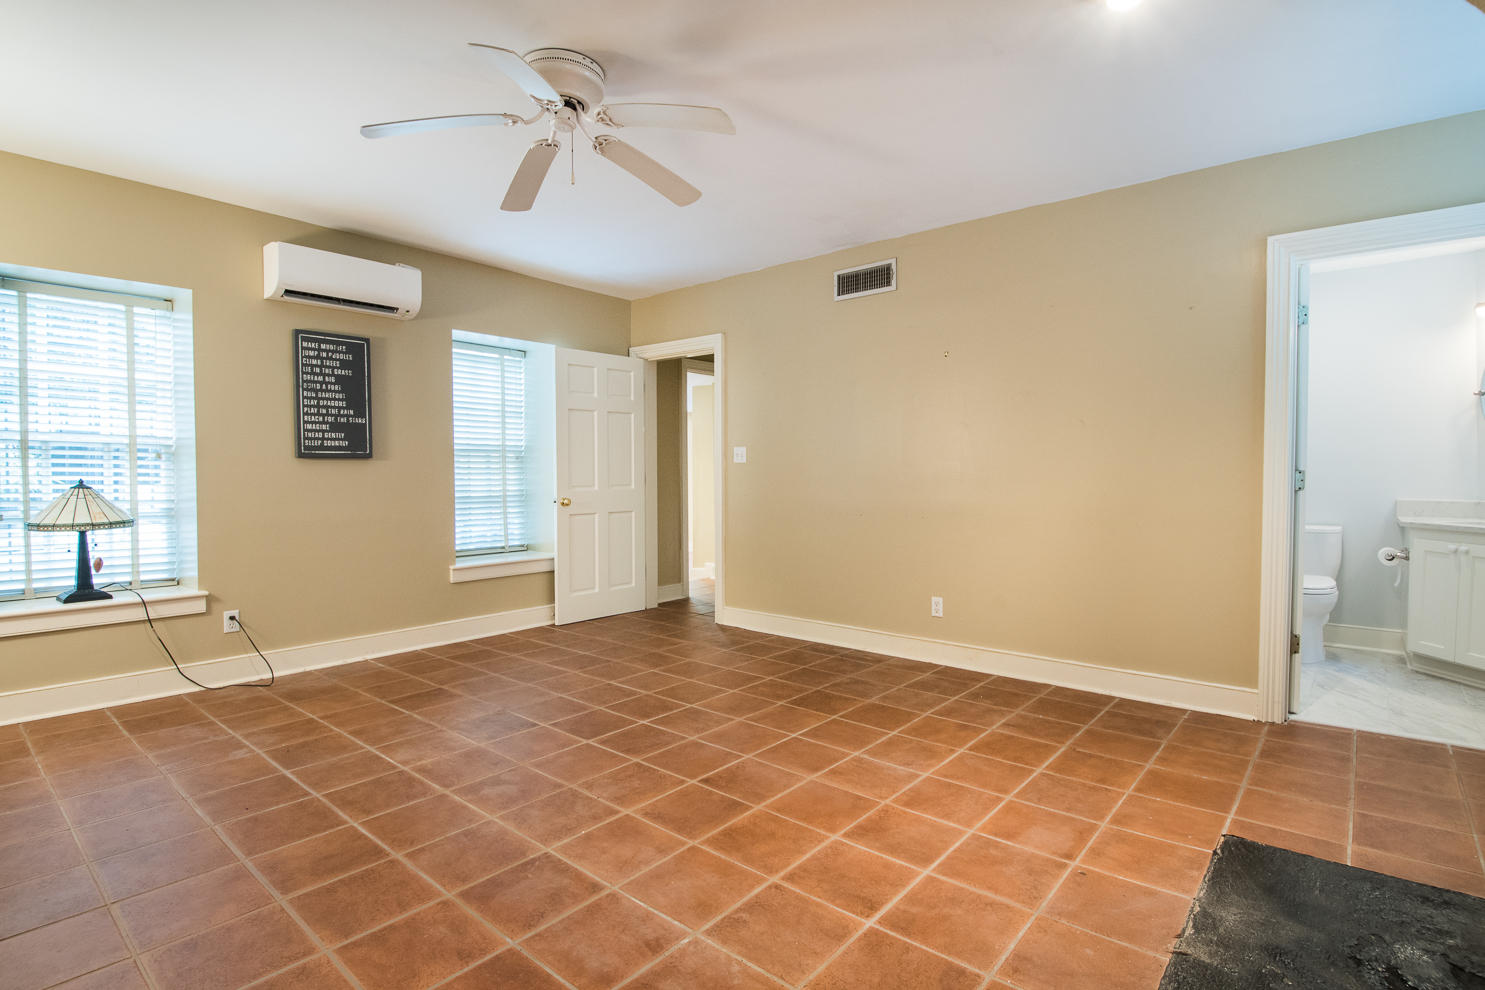 South of Broad Homes For Sale - 1 Prices, Charleston, SC - 56